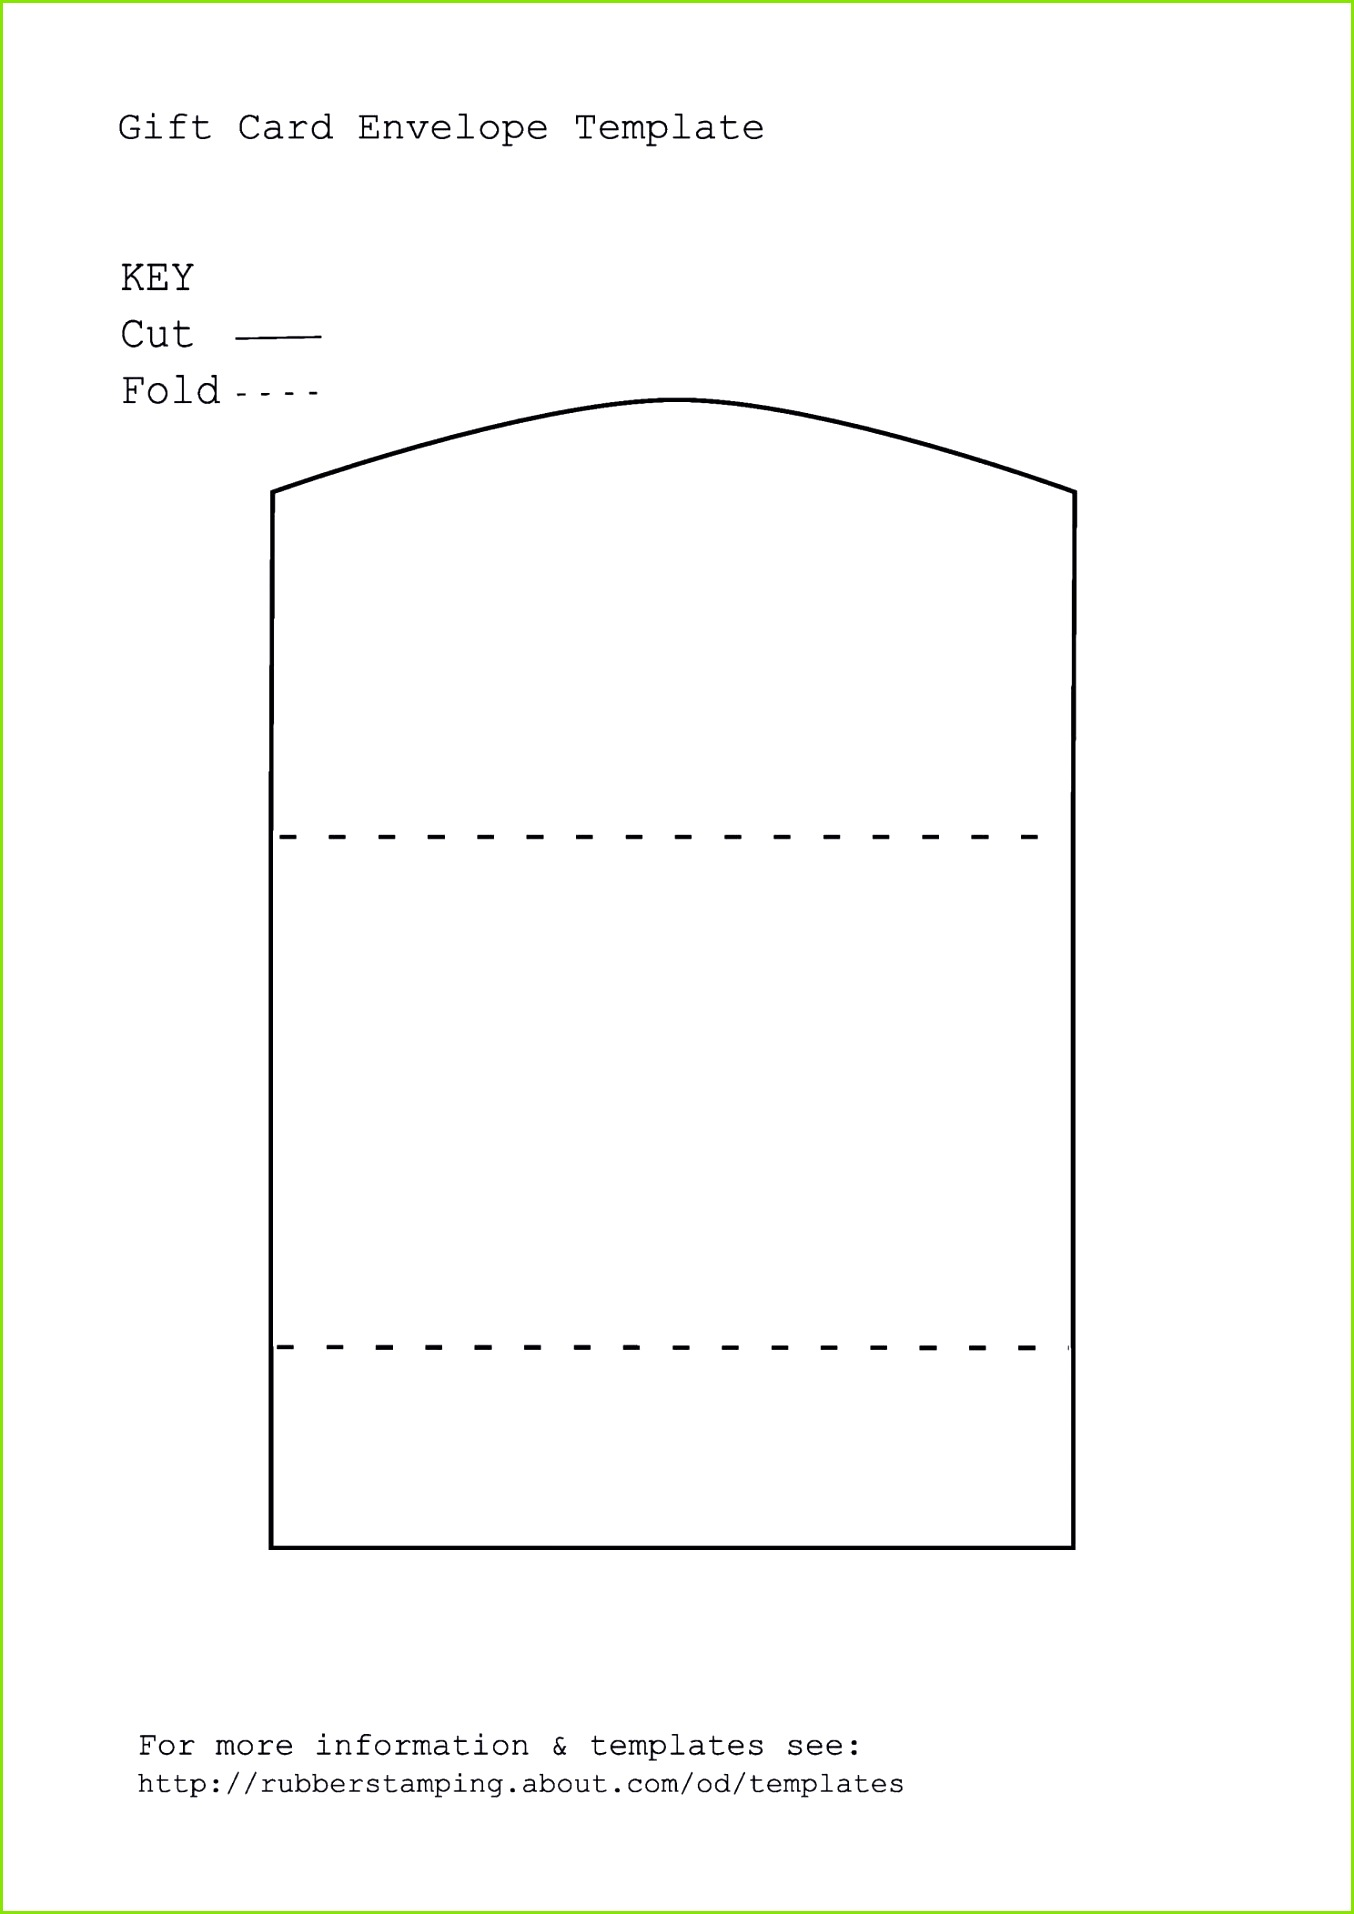 Invoice Template for Openoffice Free with Fantastisch Openoffice Zertifikatvorlage Galerie Entry Level